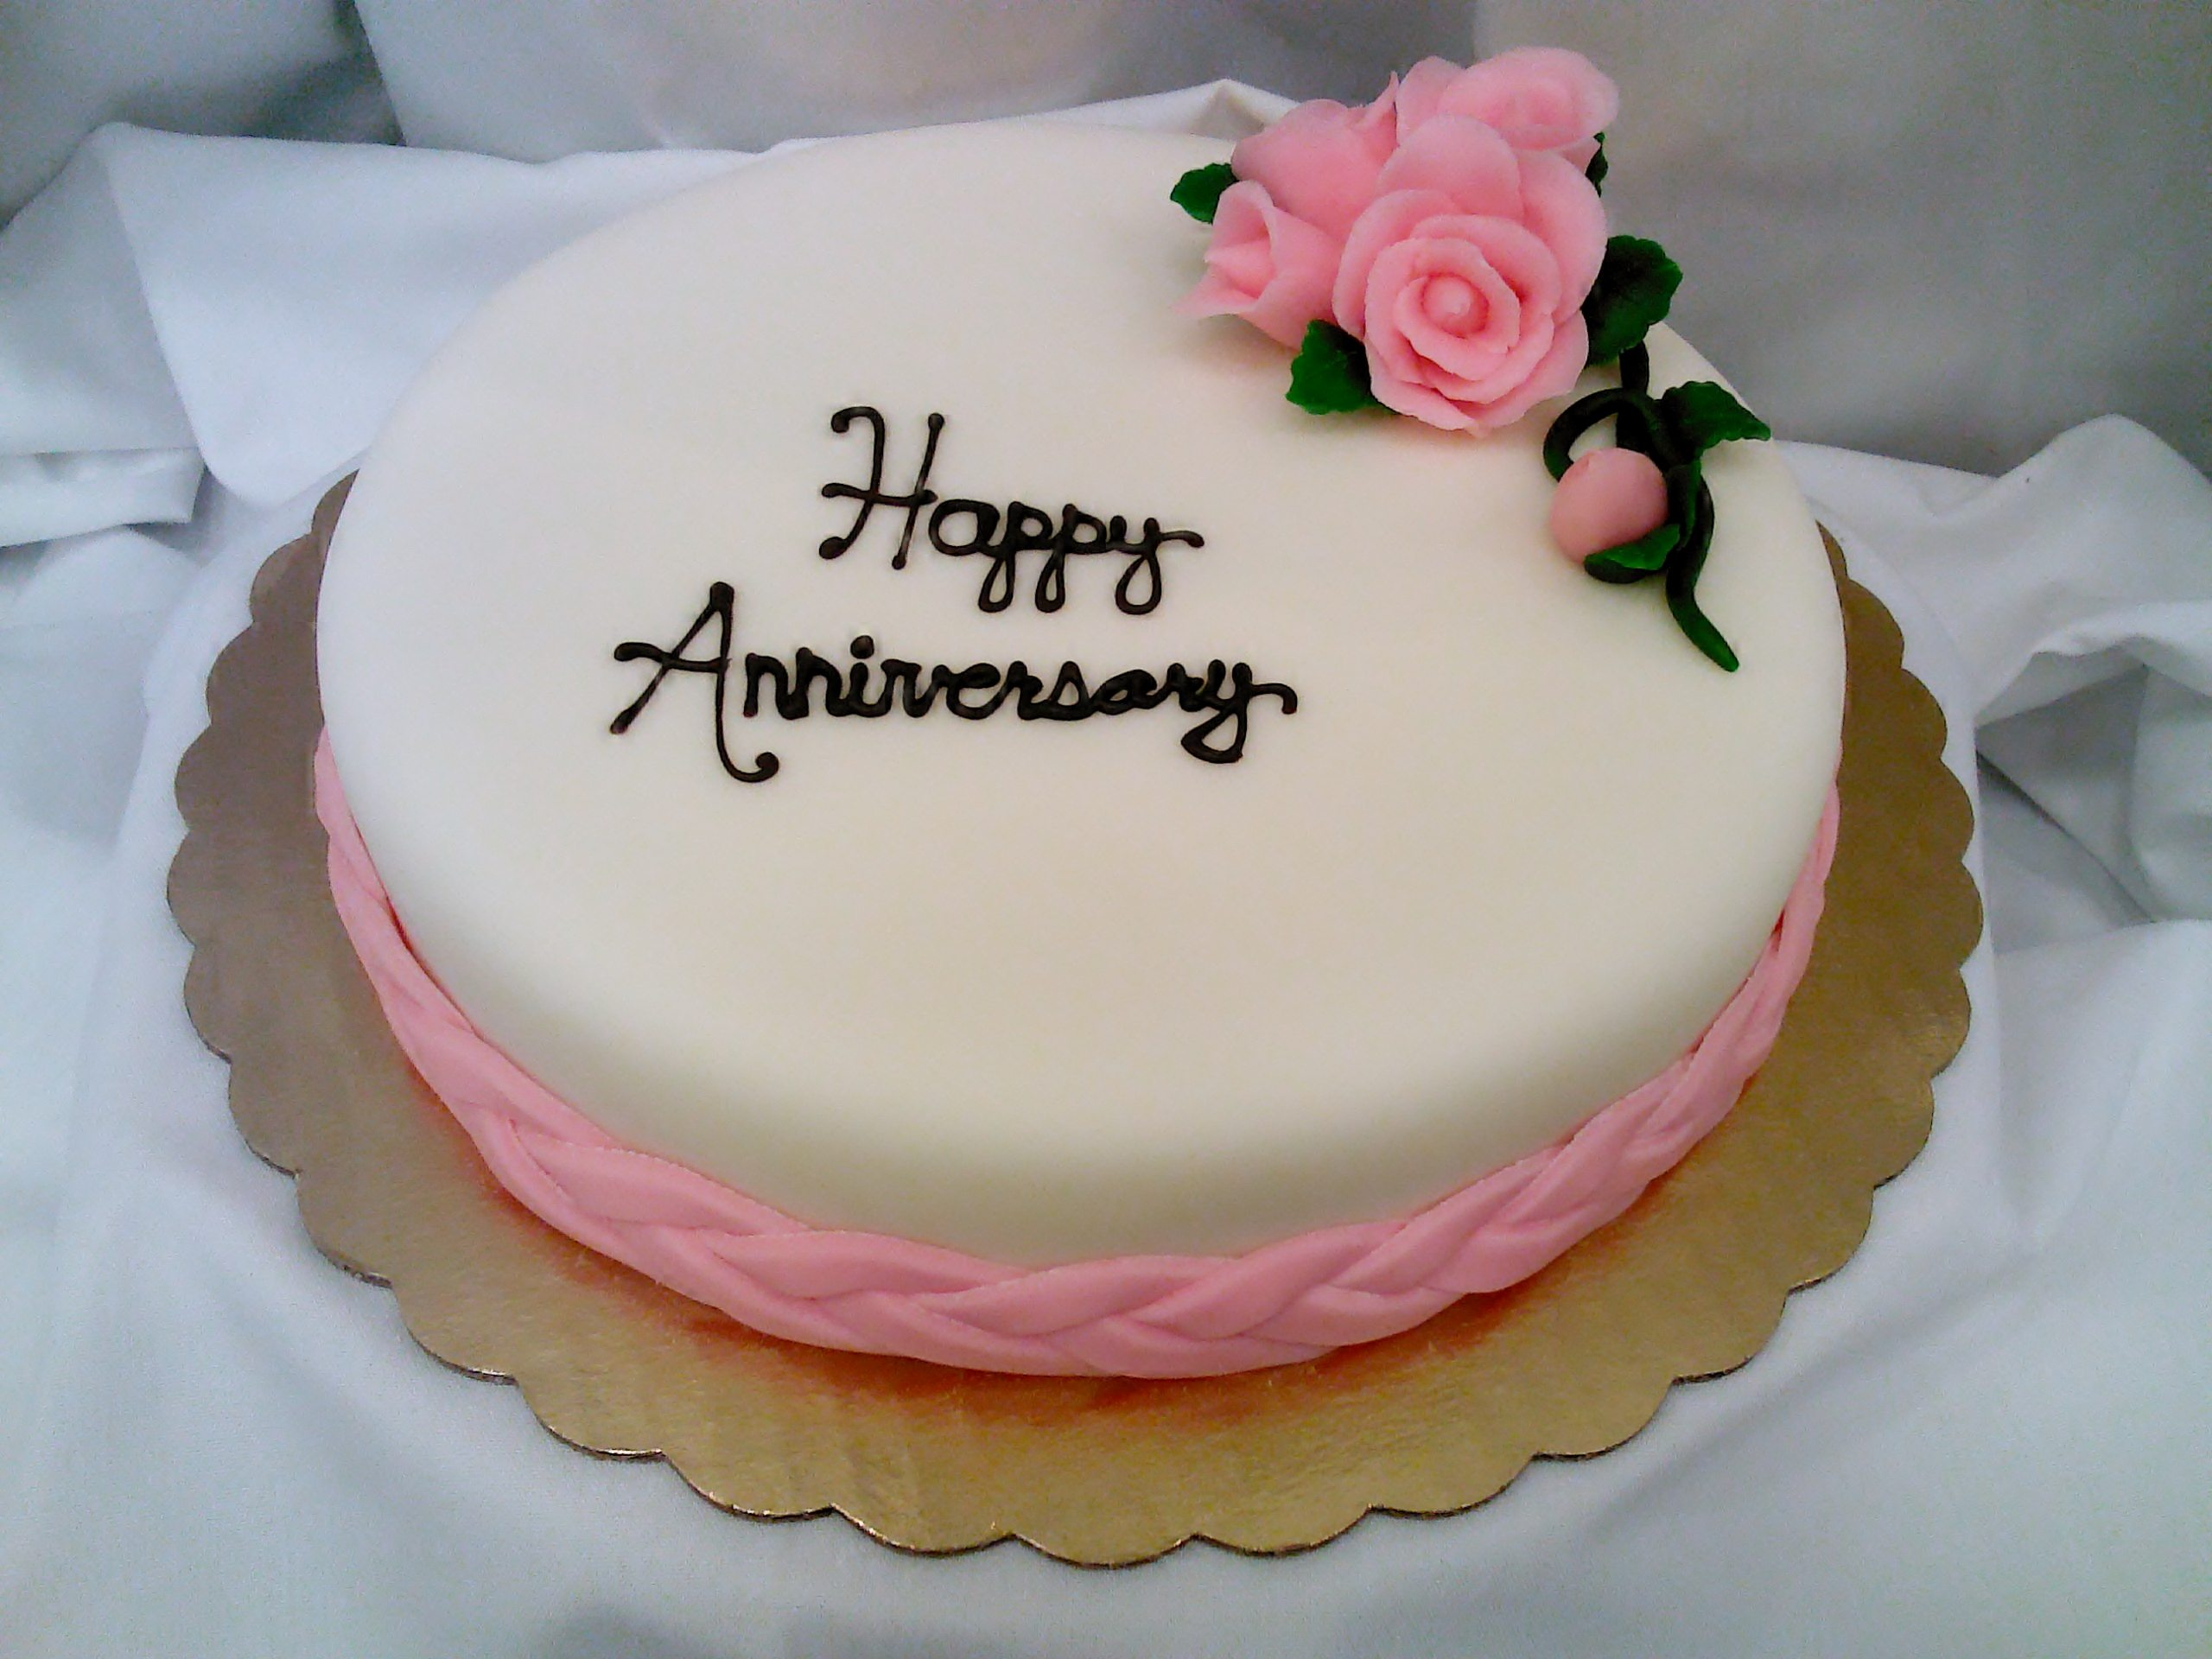 Download Images Of Anniversary Cake : Cake Pictures / Cake Pics / Cake Wallpaper